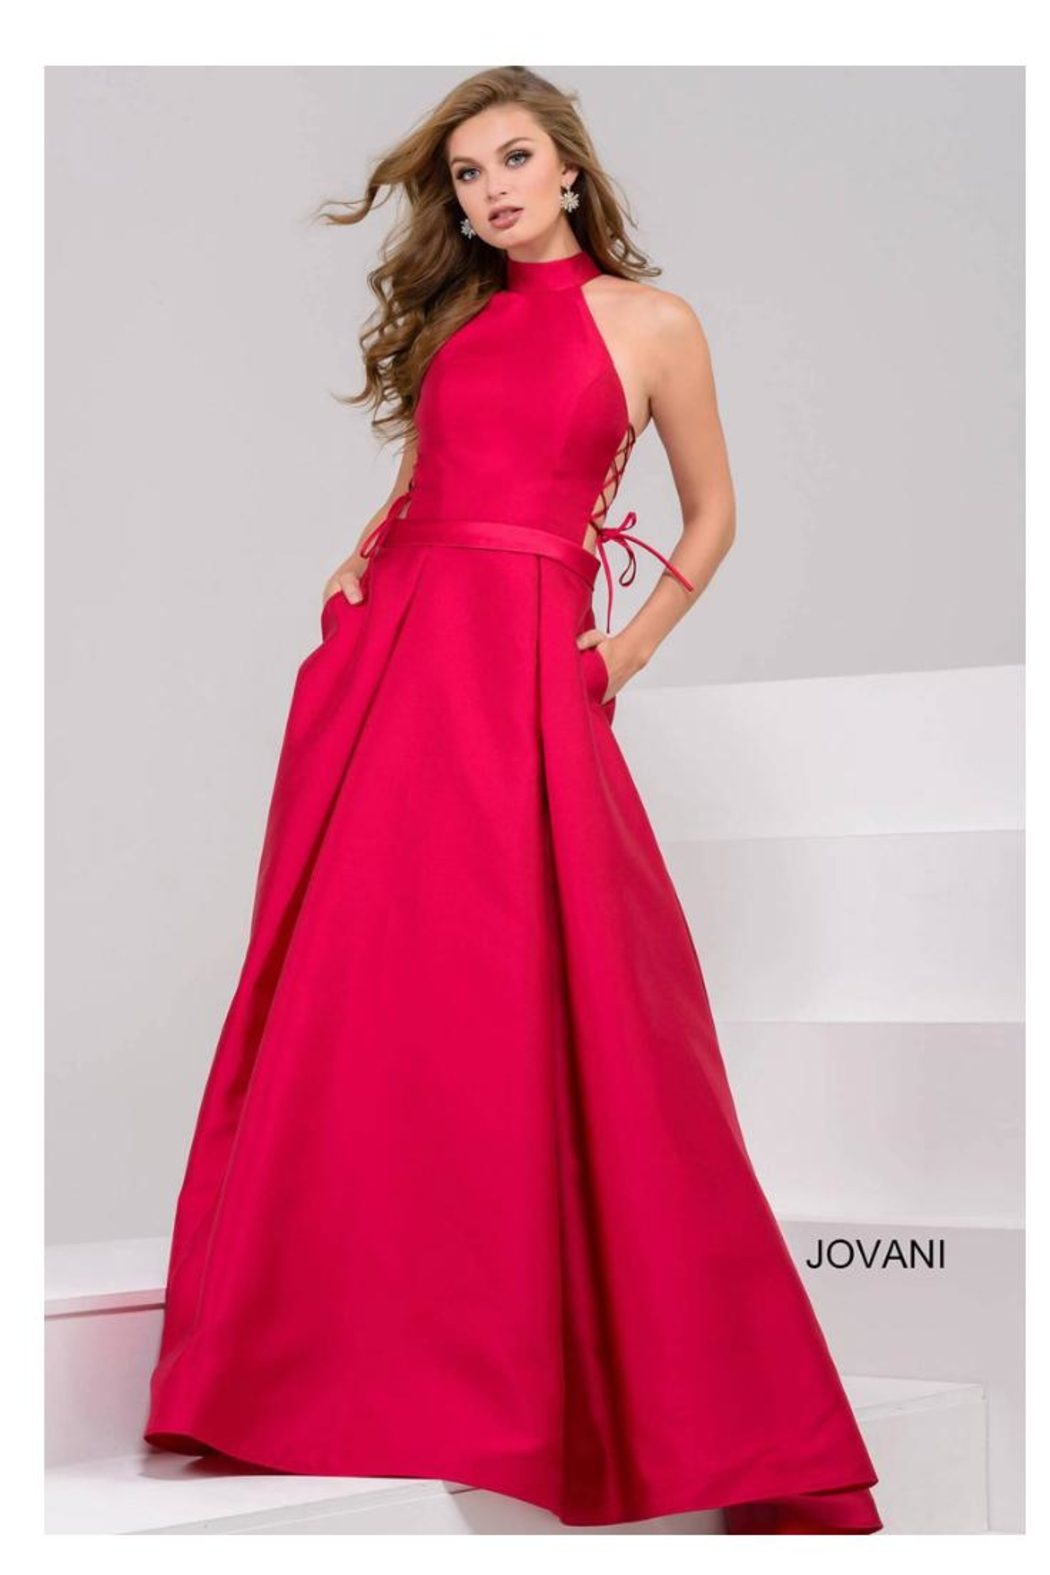 5709e1dba54 Jovani PROM Pink Ball Gown from Guilford by A s Unique Boutique ...